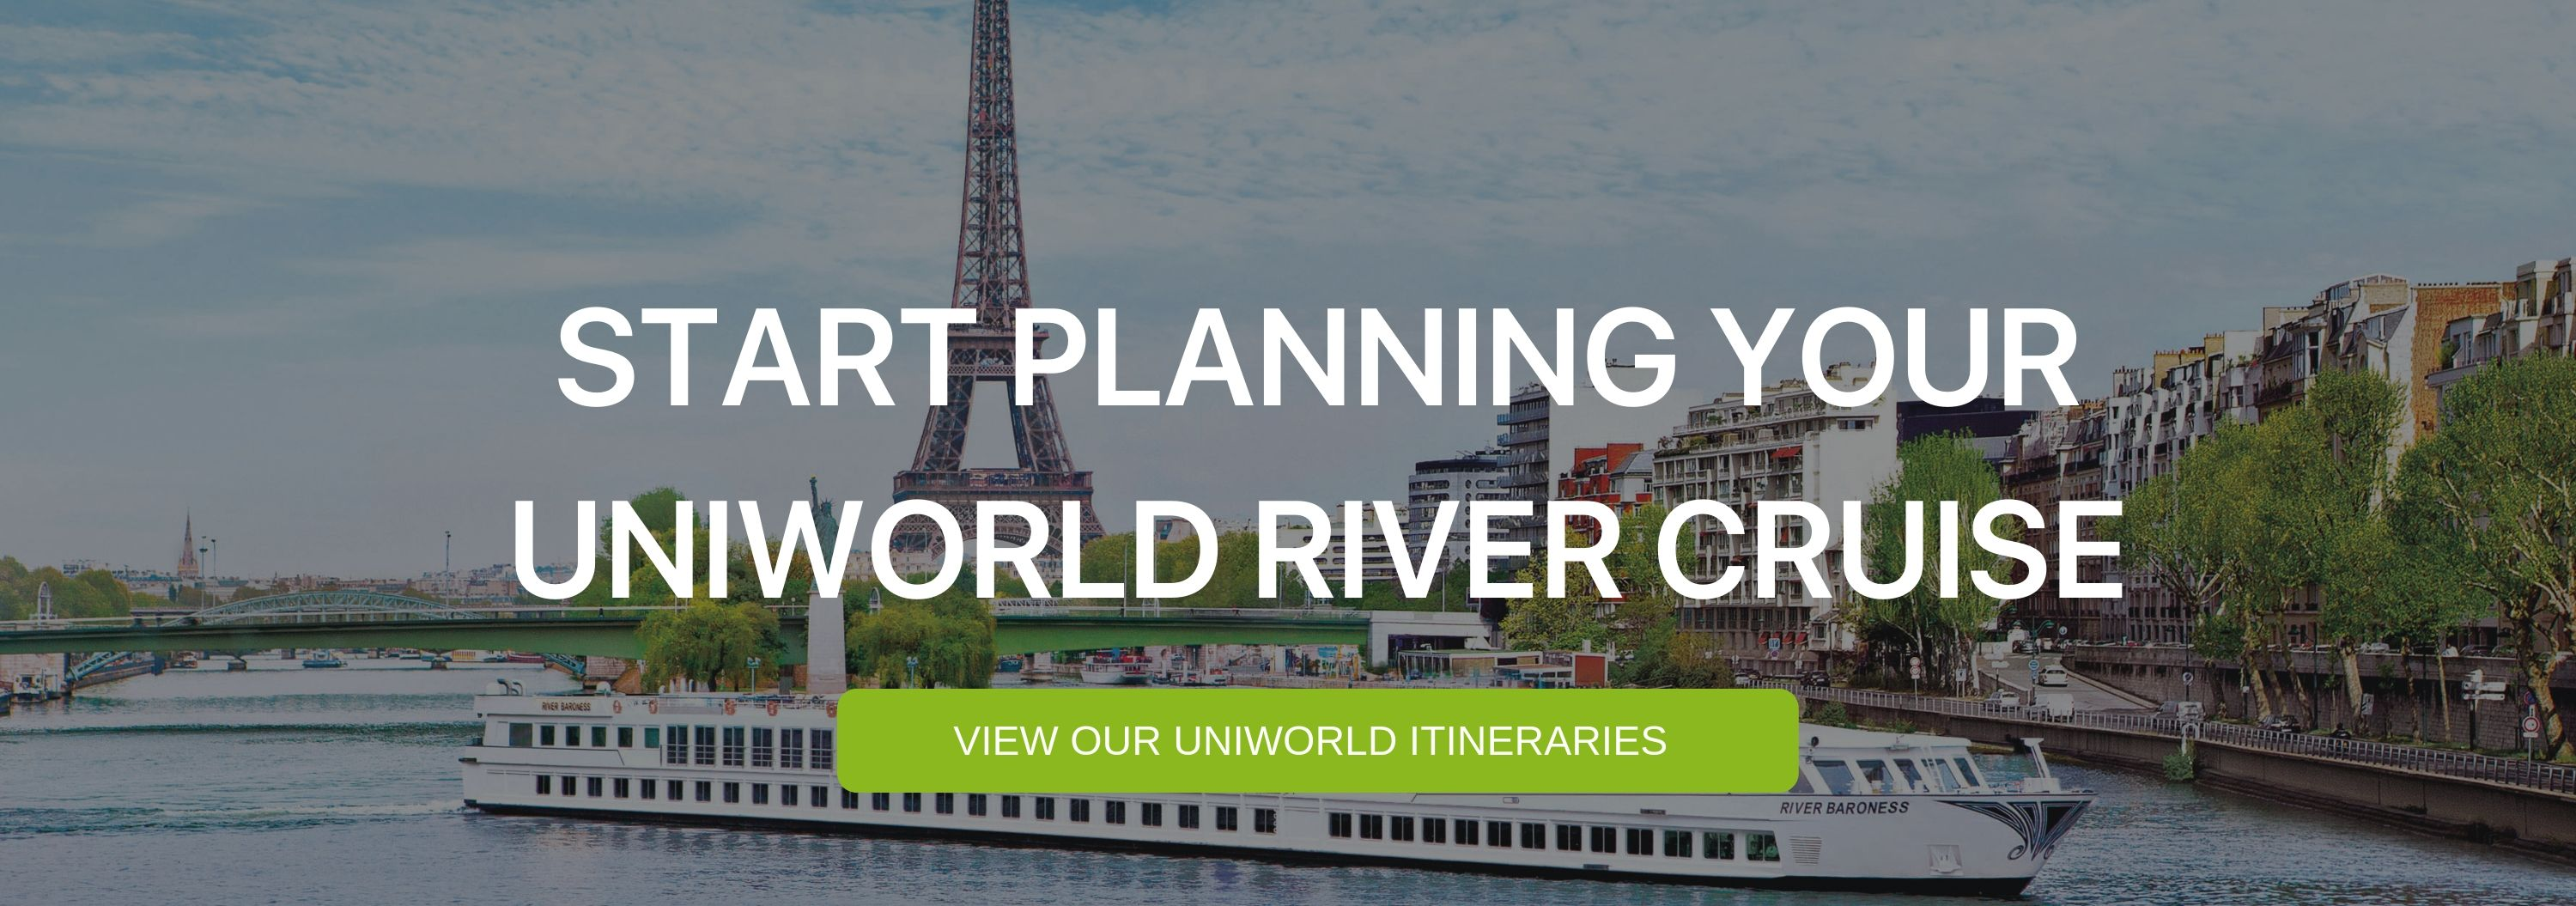 """A banner that says """"Start planning your uniworld river cruise"""""""